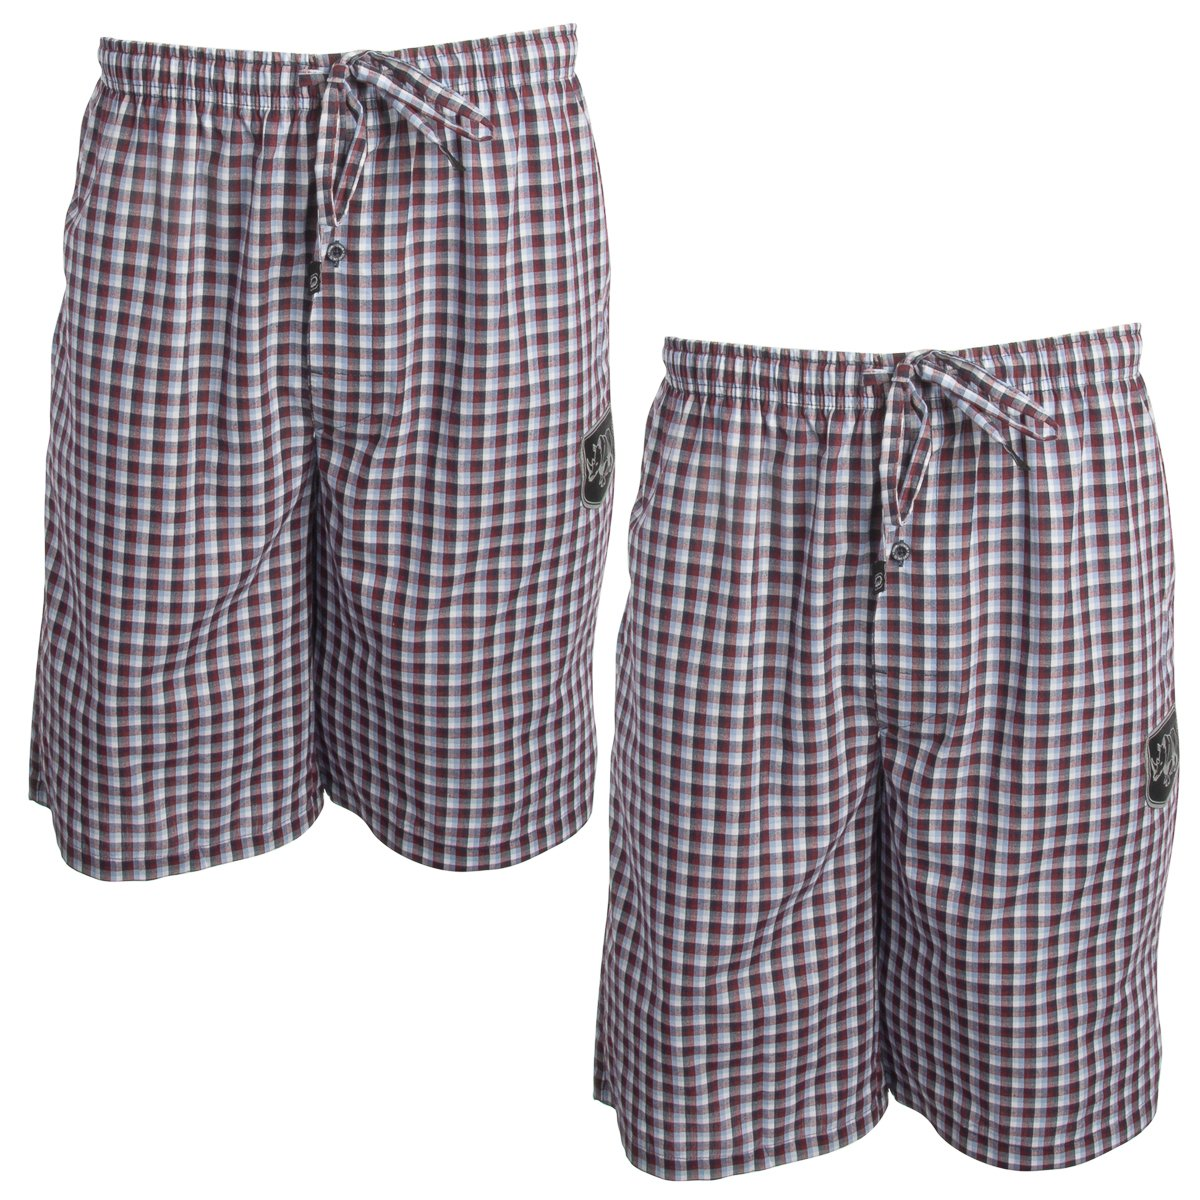 Ecko Unltd........ (2 Pack Cool Cotton Pajama Shorts for Men Sleep Shorts Loungewear Sleepwear Home Travel